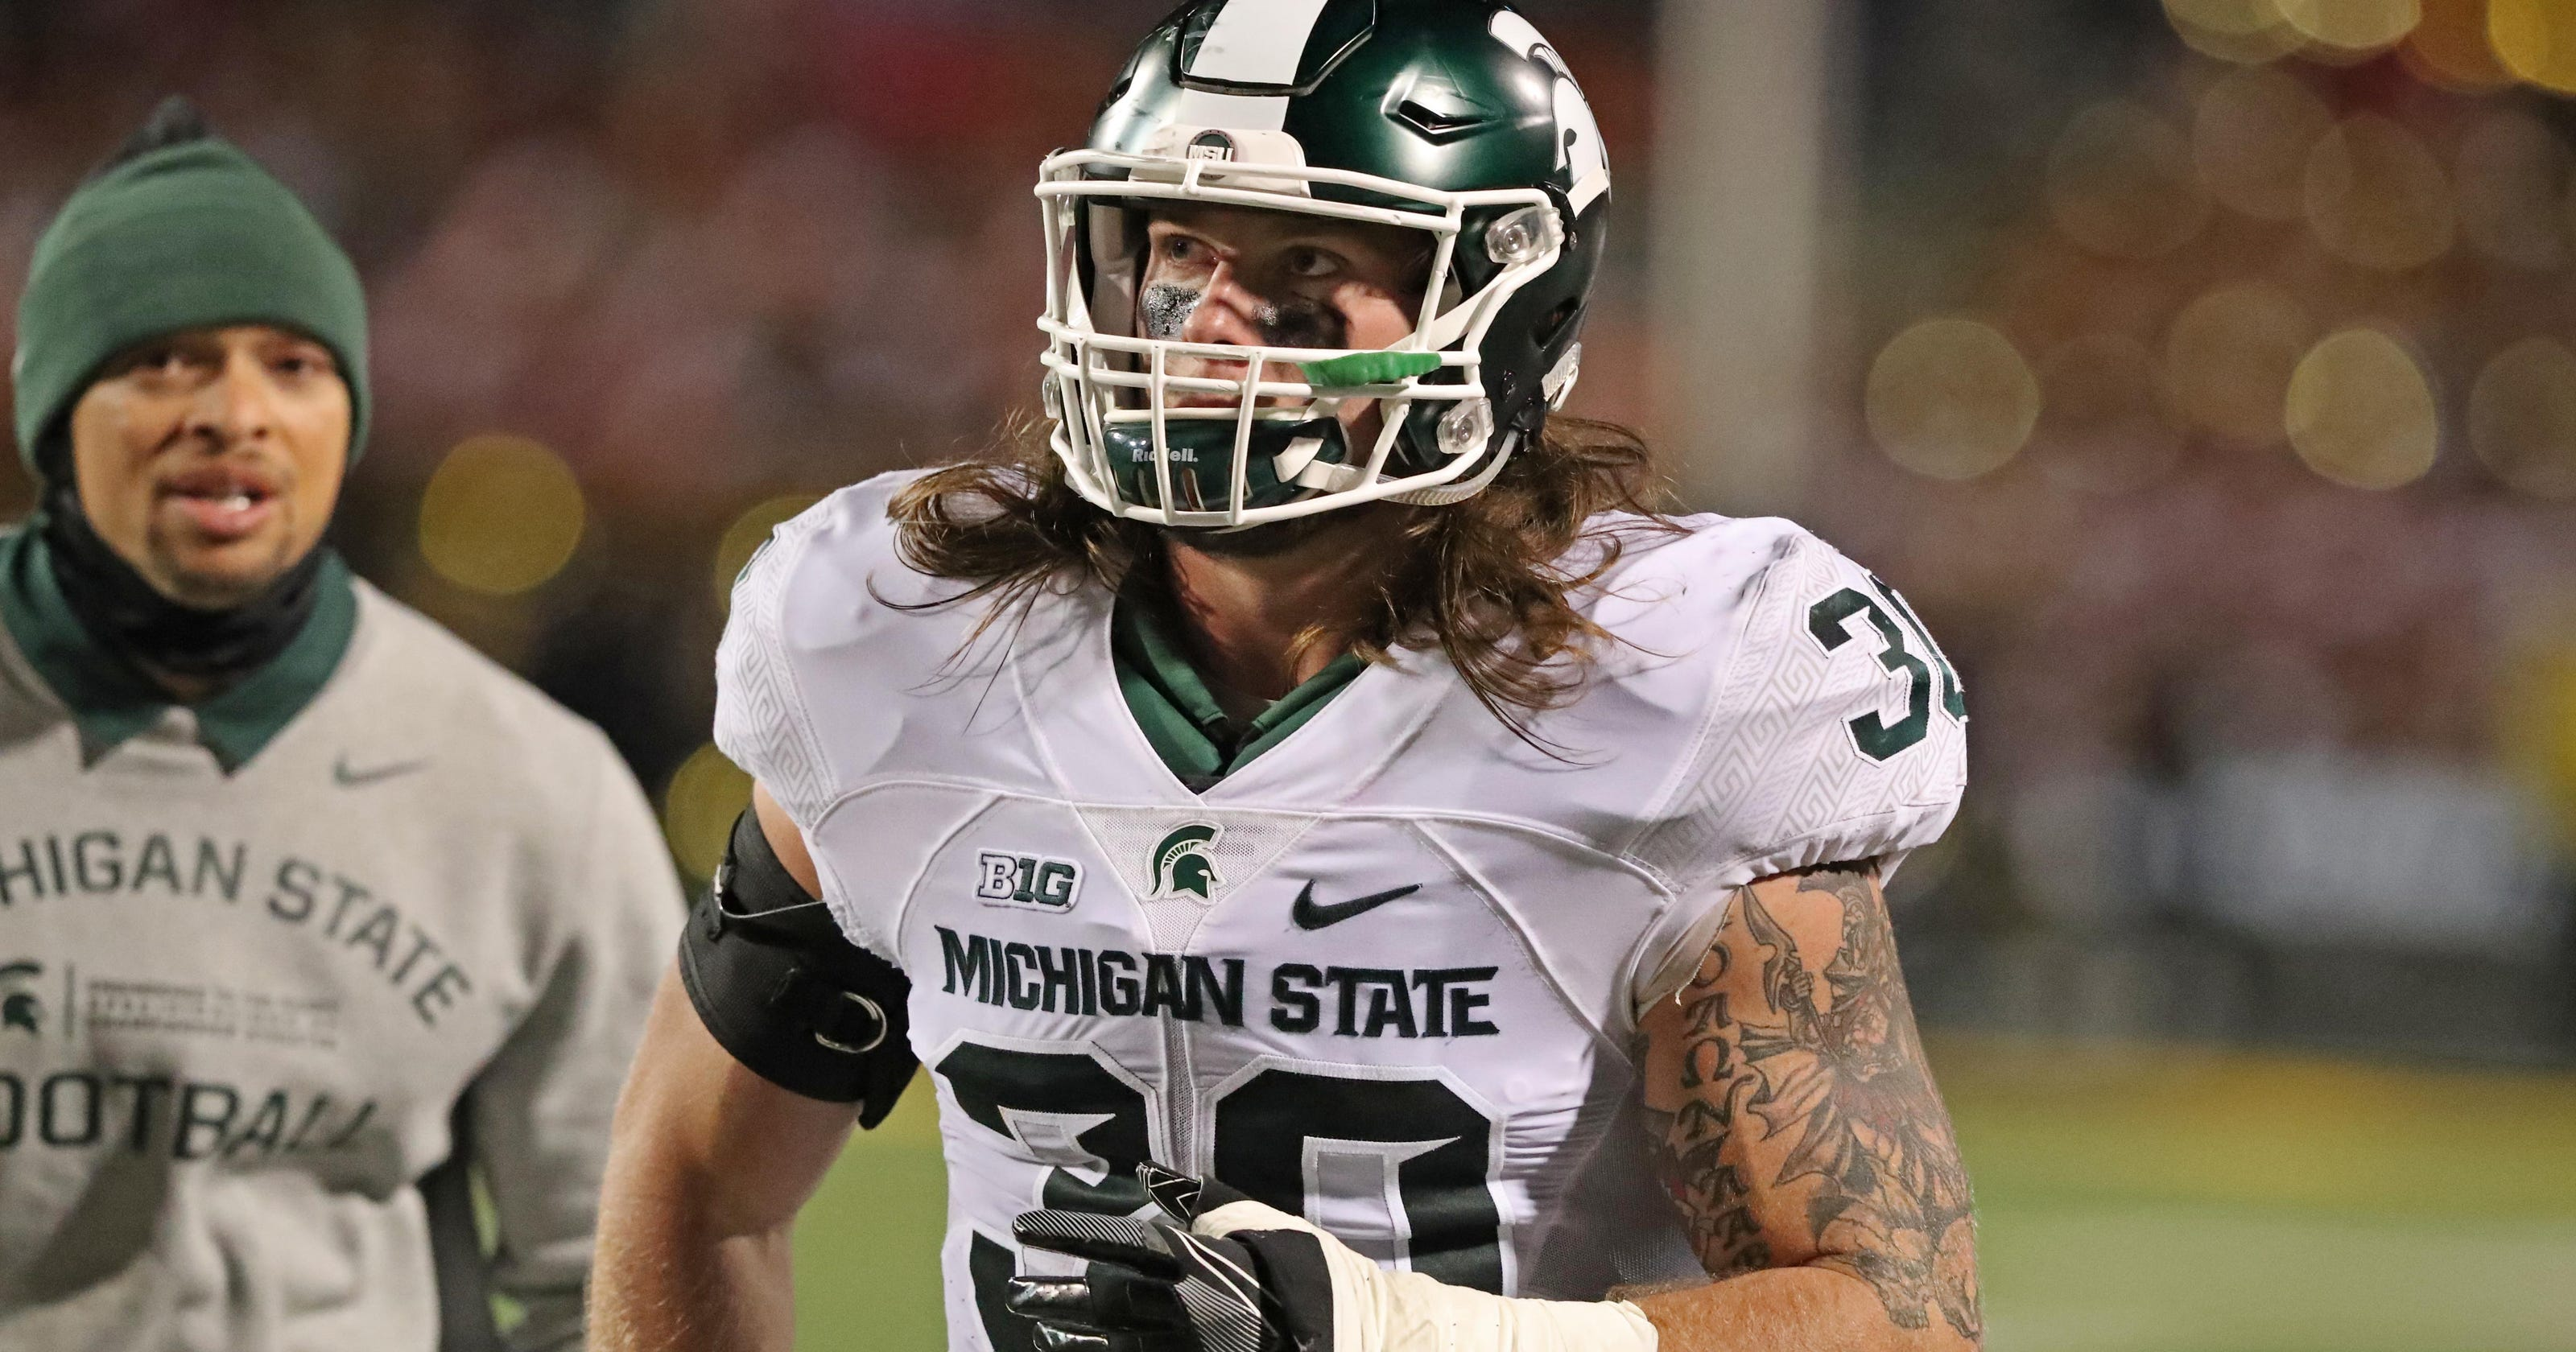 brand new 2e3a0 9b754 MSU captain Riley Bullough ejected for targeting